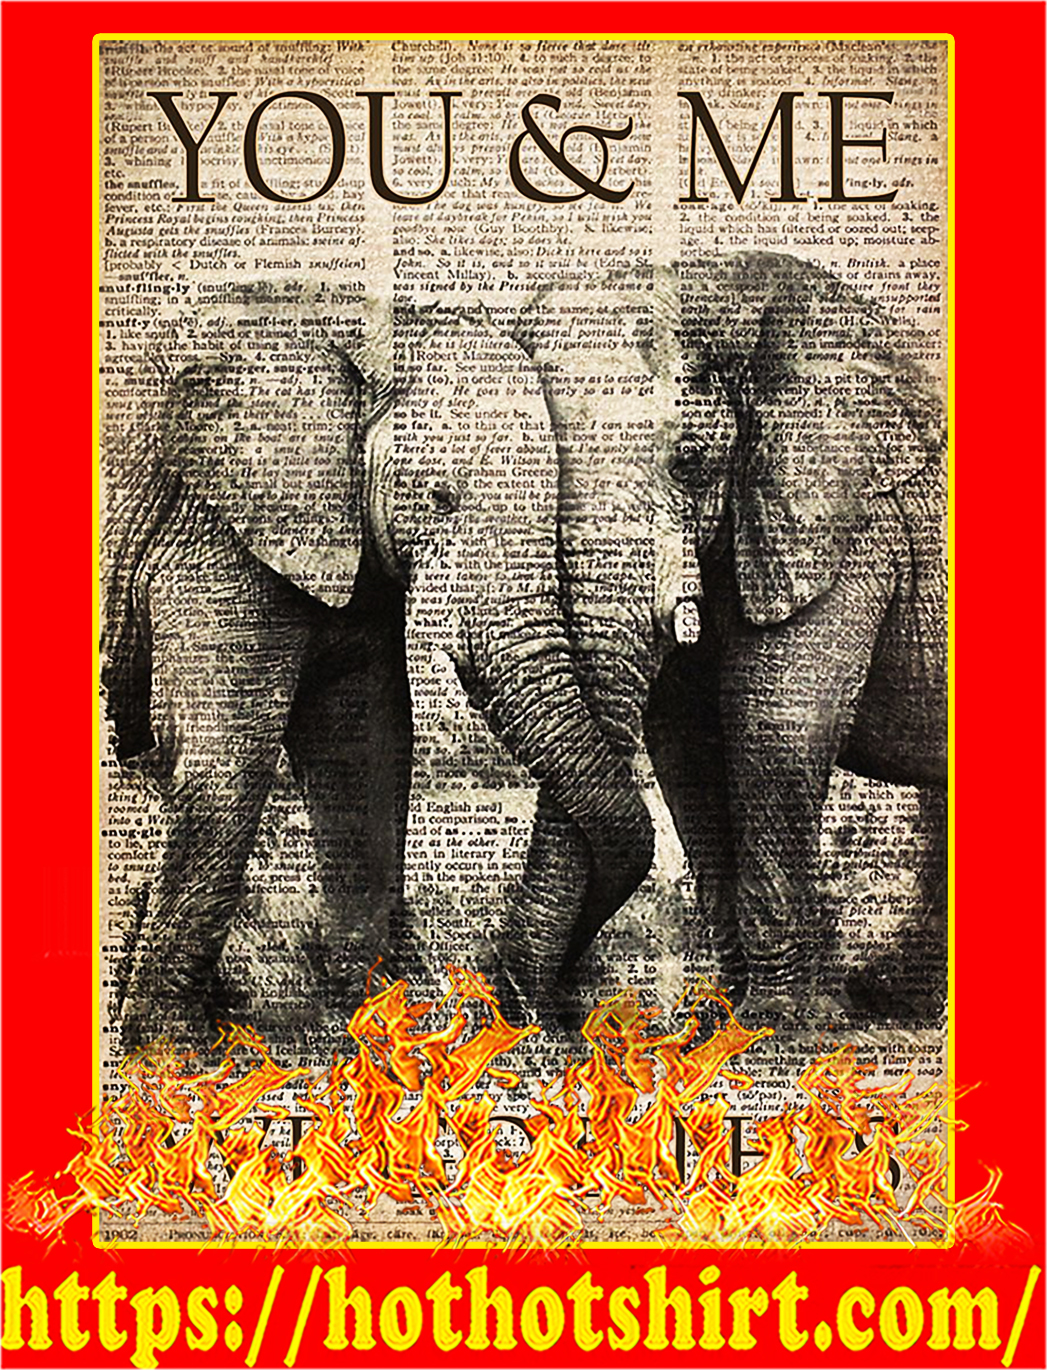 You and me we got this elephant poster - A2